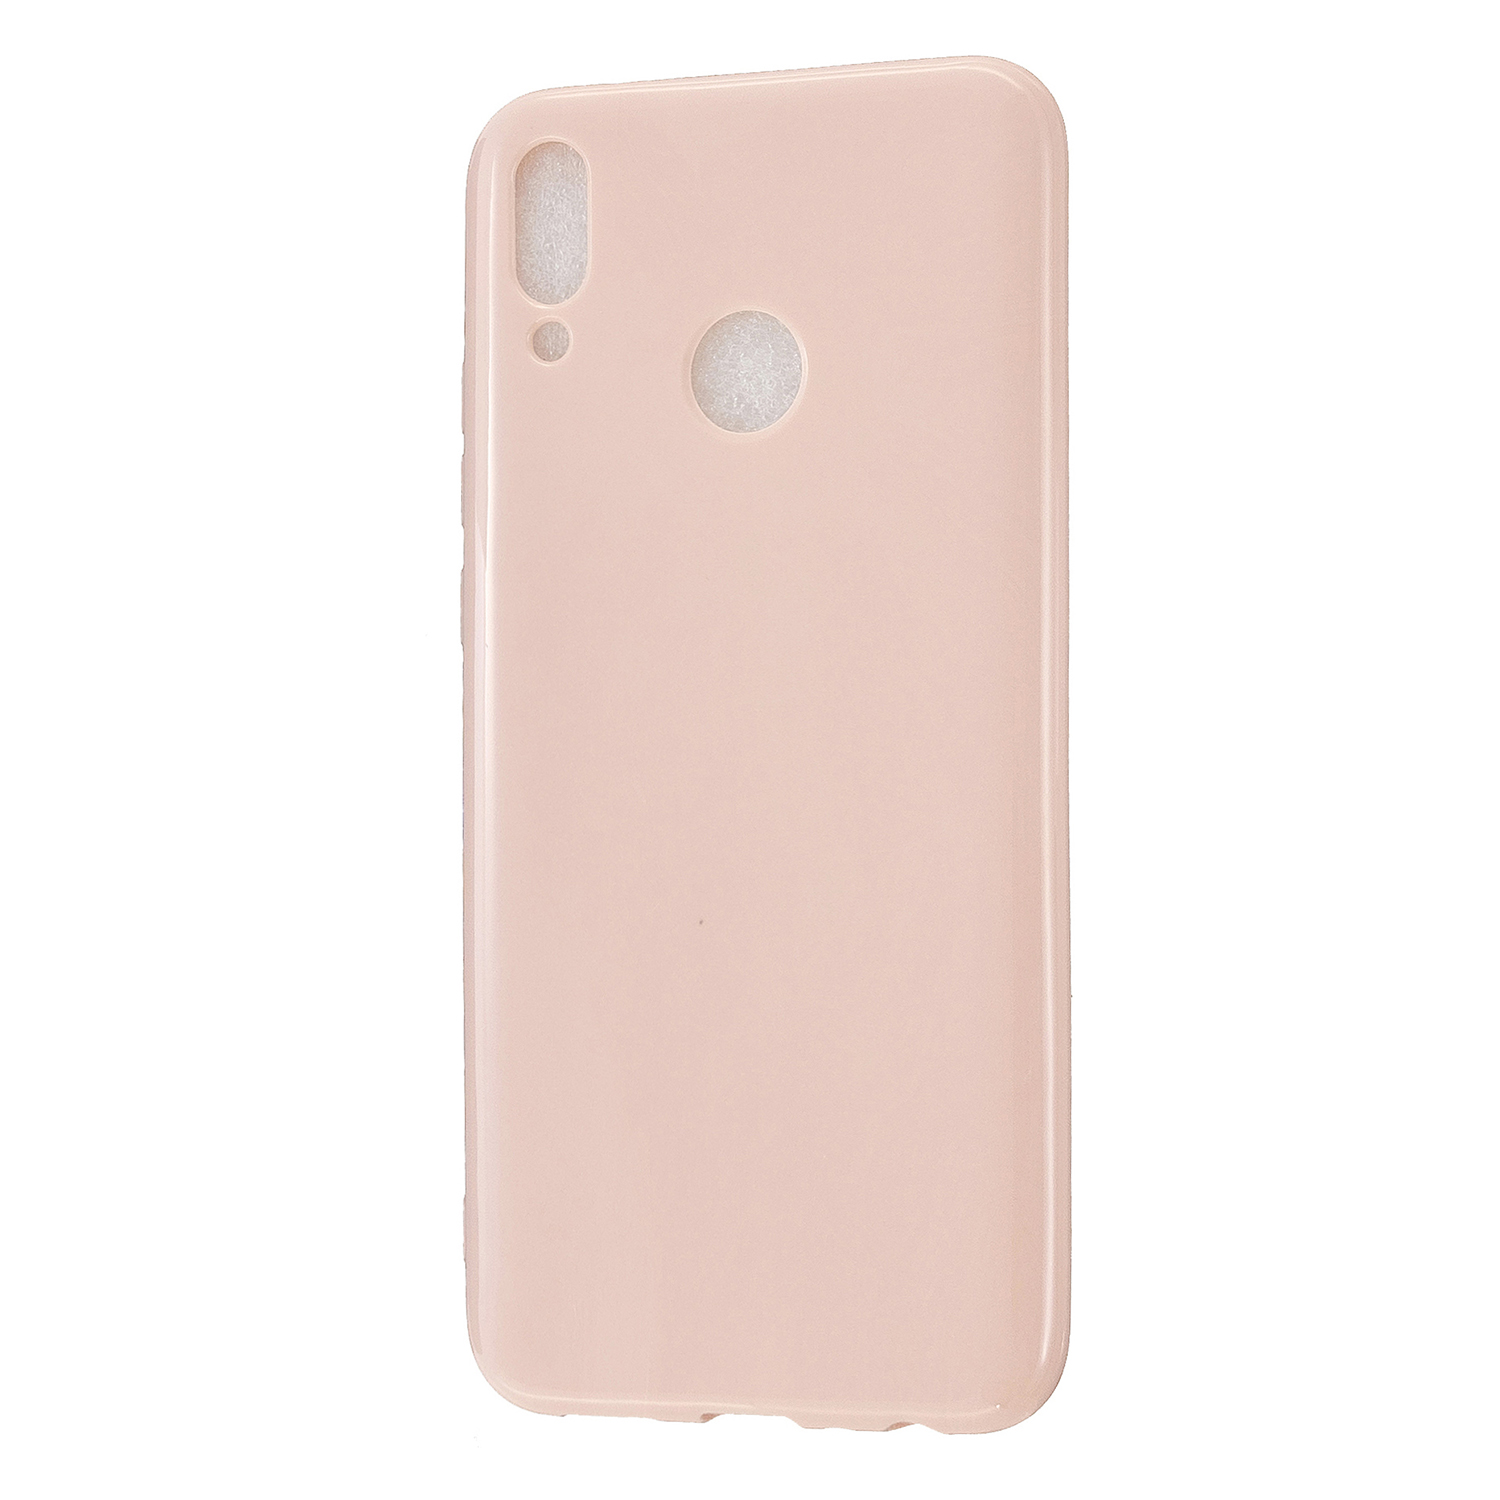 For HUAWEI Y9/Y9 Prime 2019 Cellphone Shell Glossy TPU Case Soft Mobile Phone Cover Full Body Protection Sakura pink